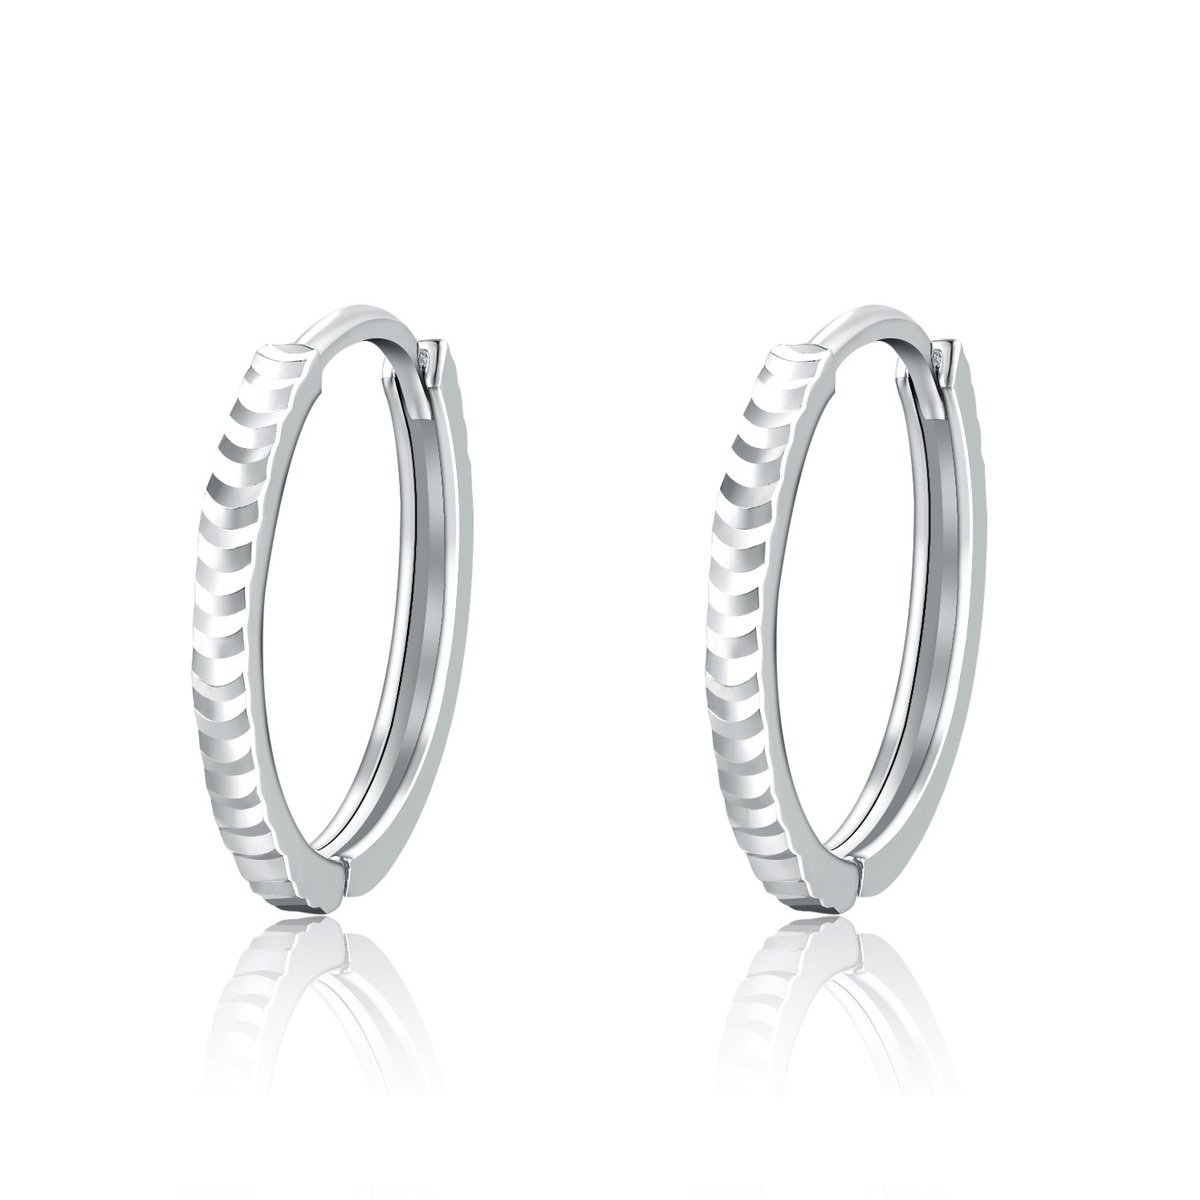 14K/585 White Gold Diamond Cut Hoop Earrings